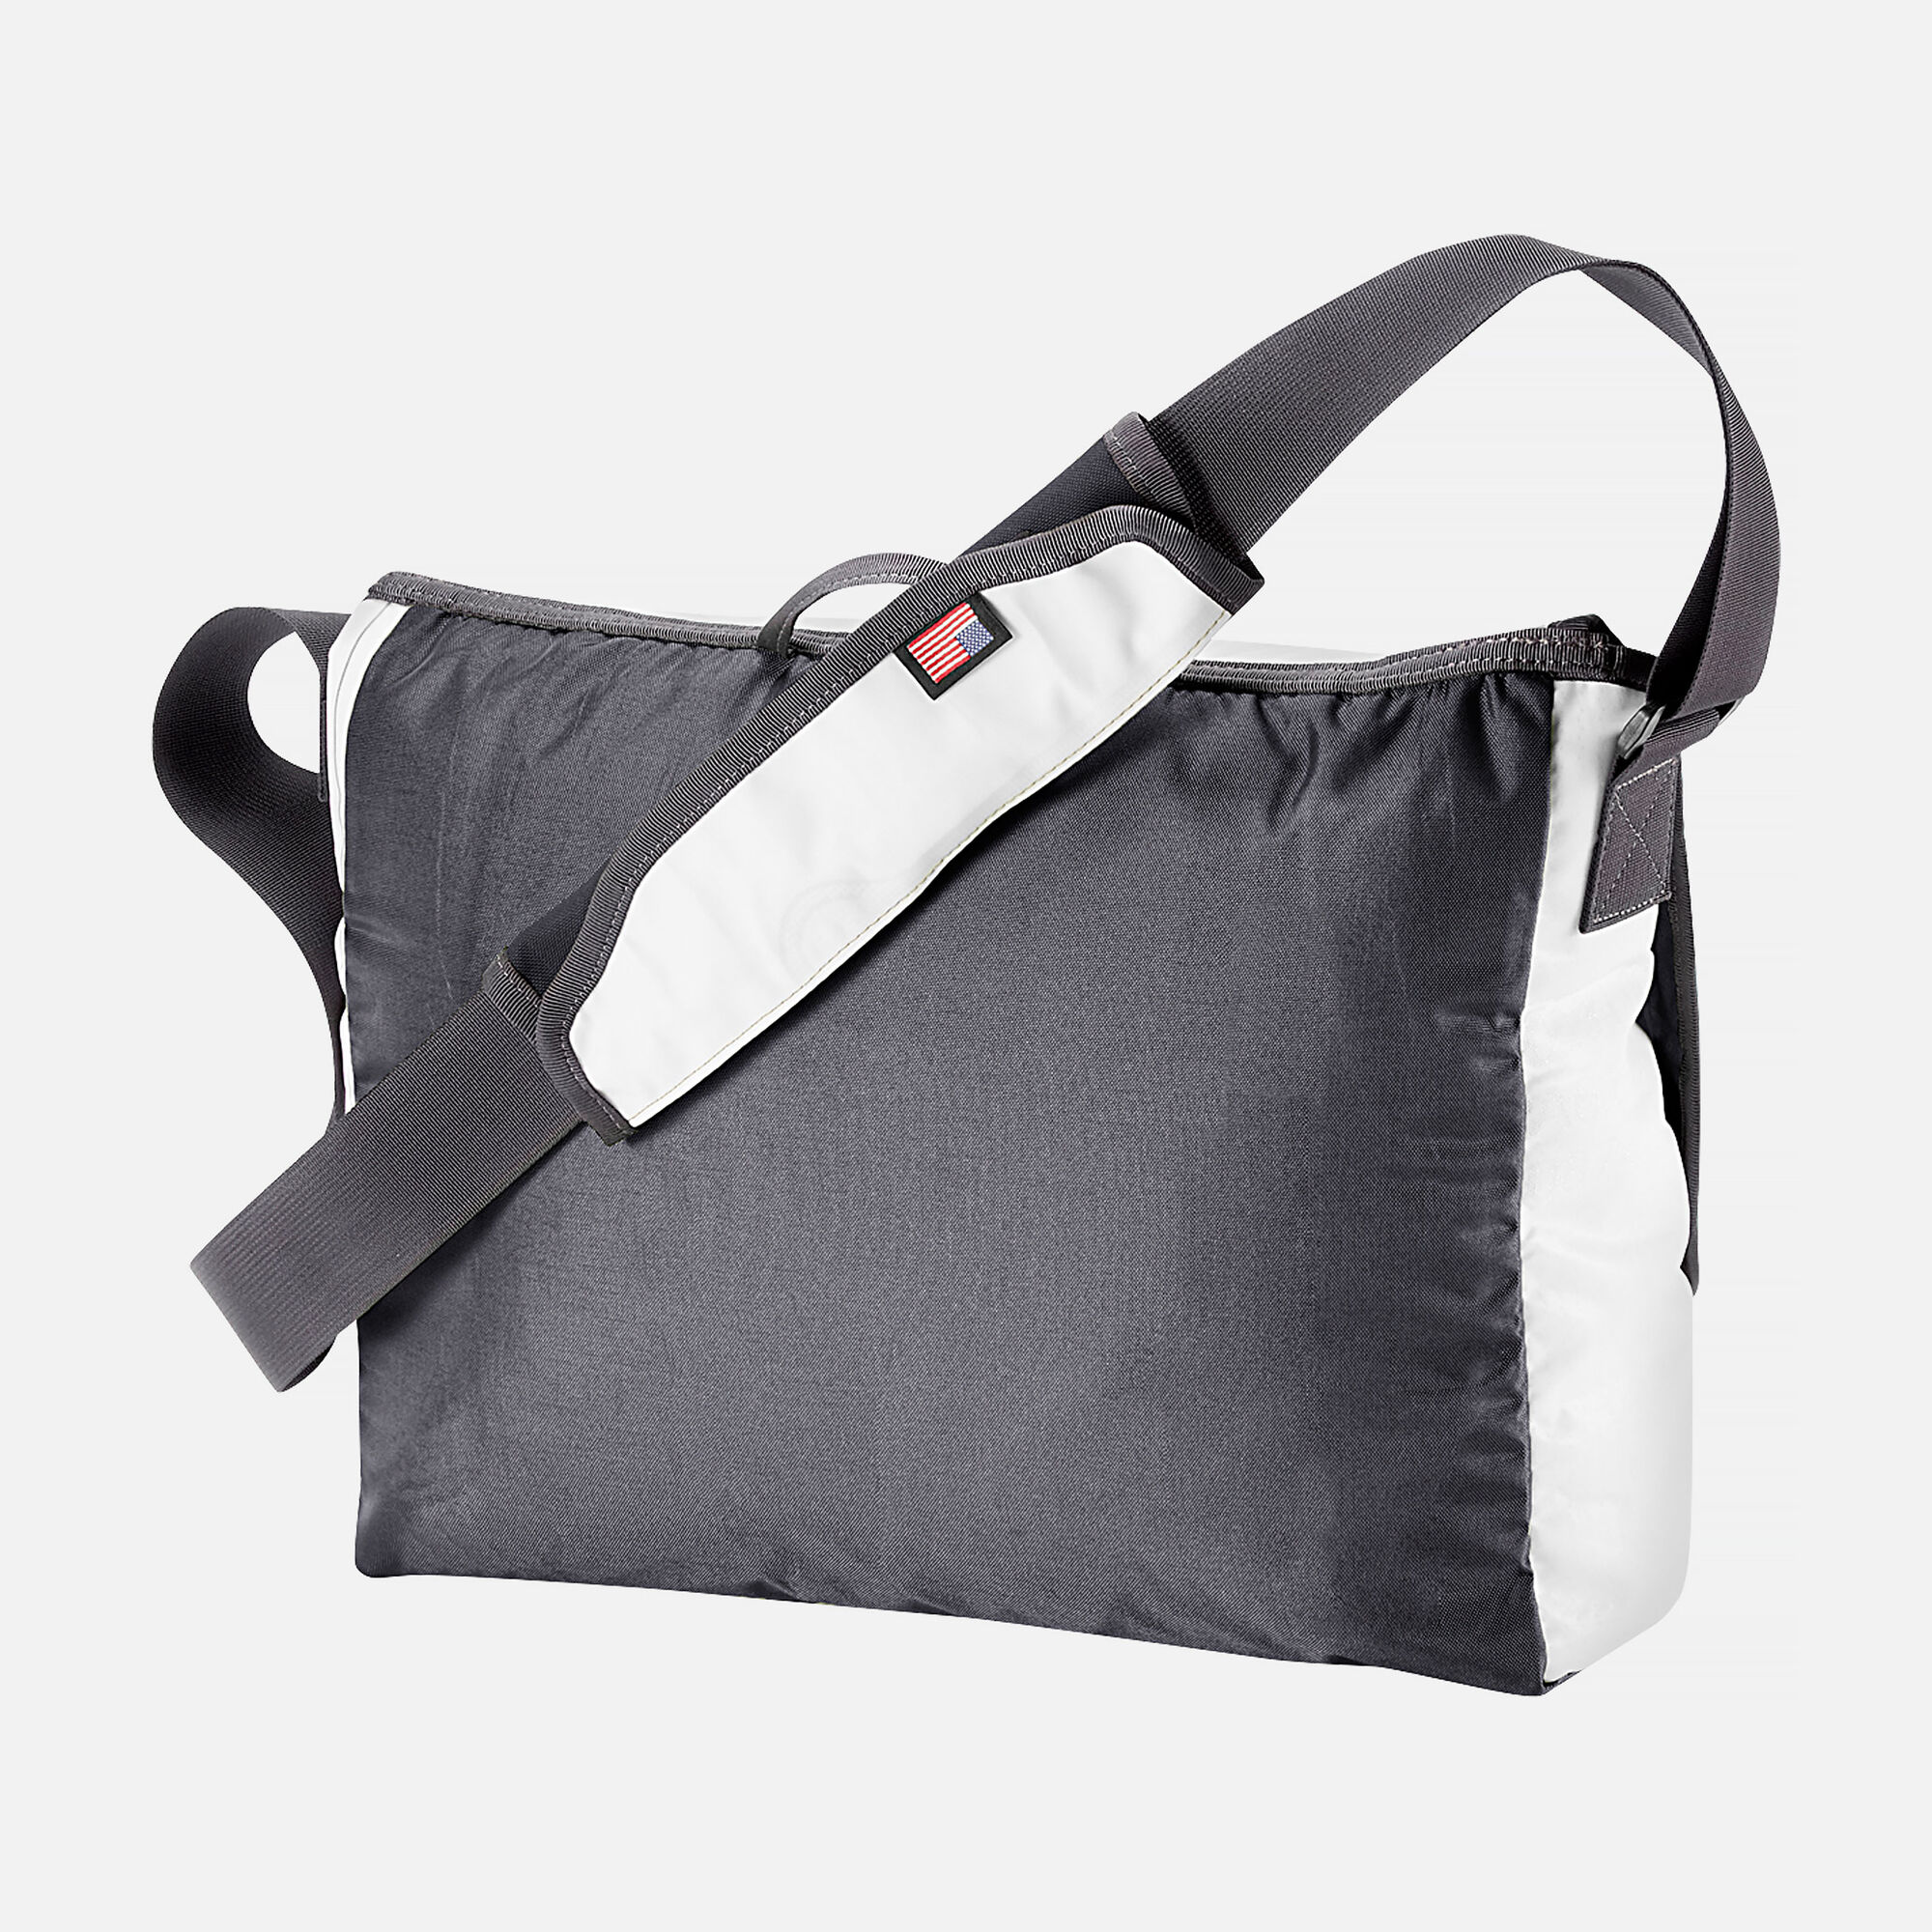 Keen Harvest Iii Messenger Bag In White Grey Small View